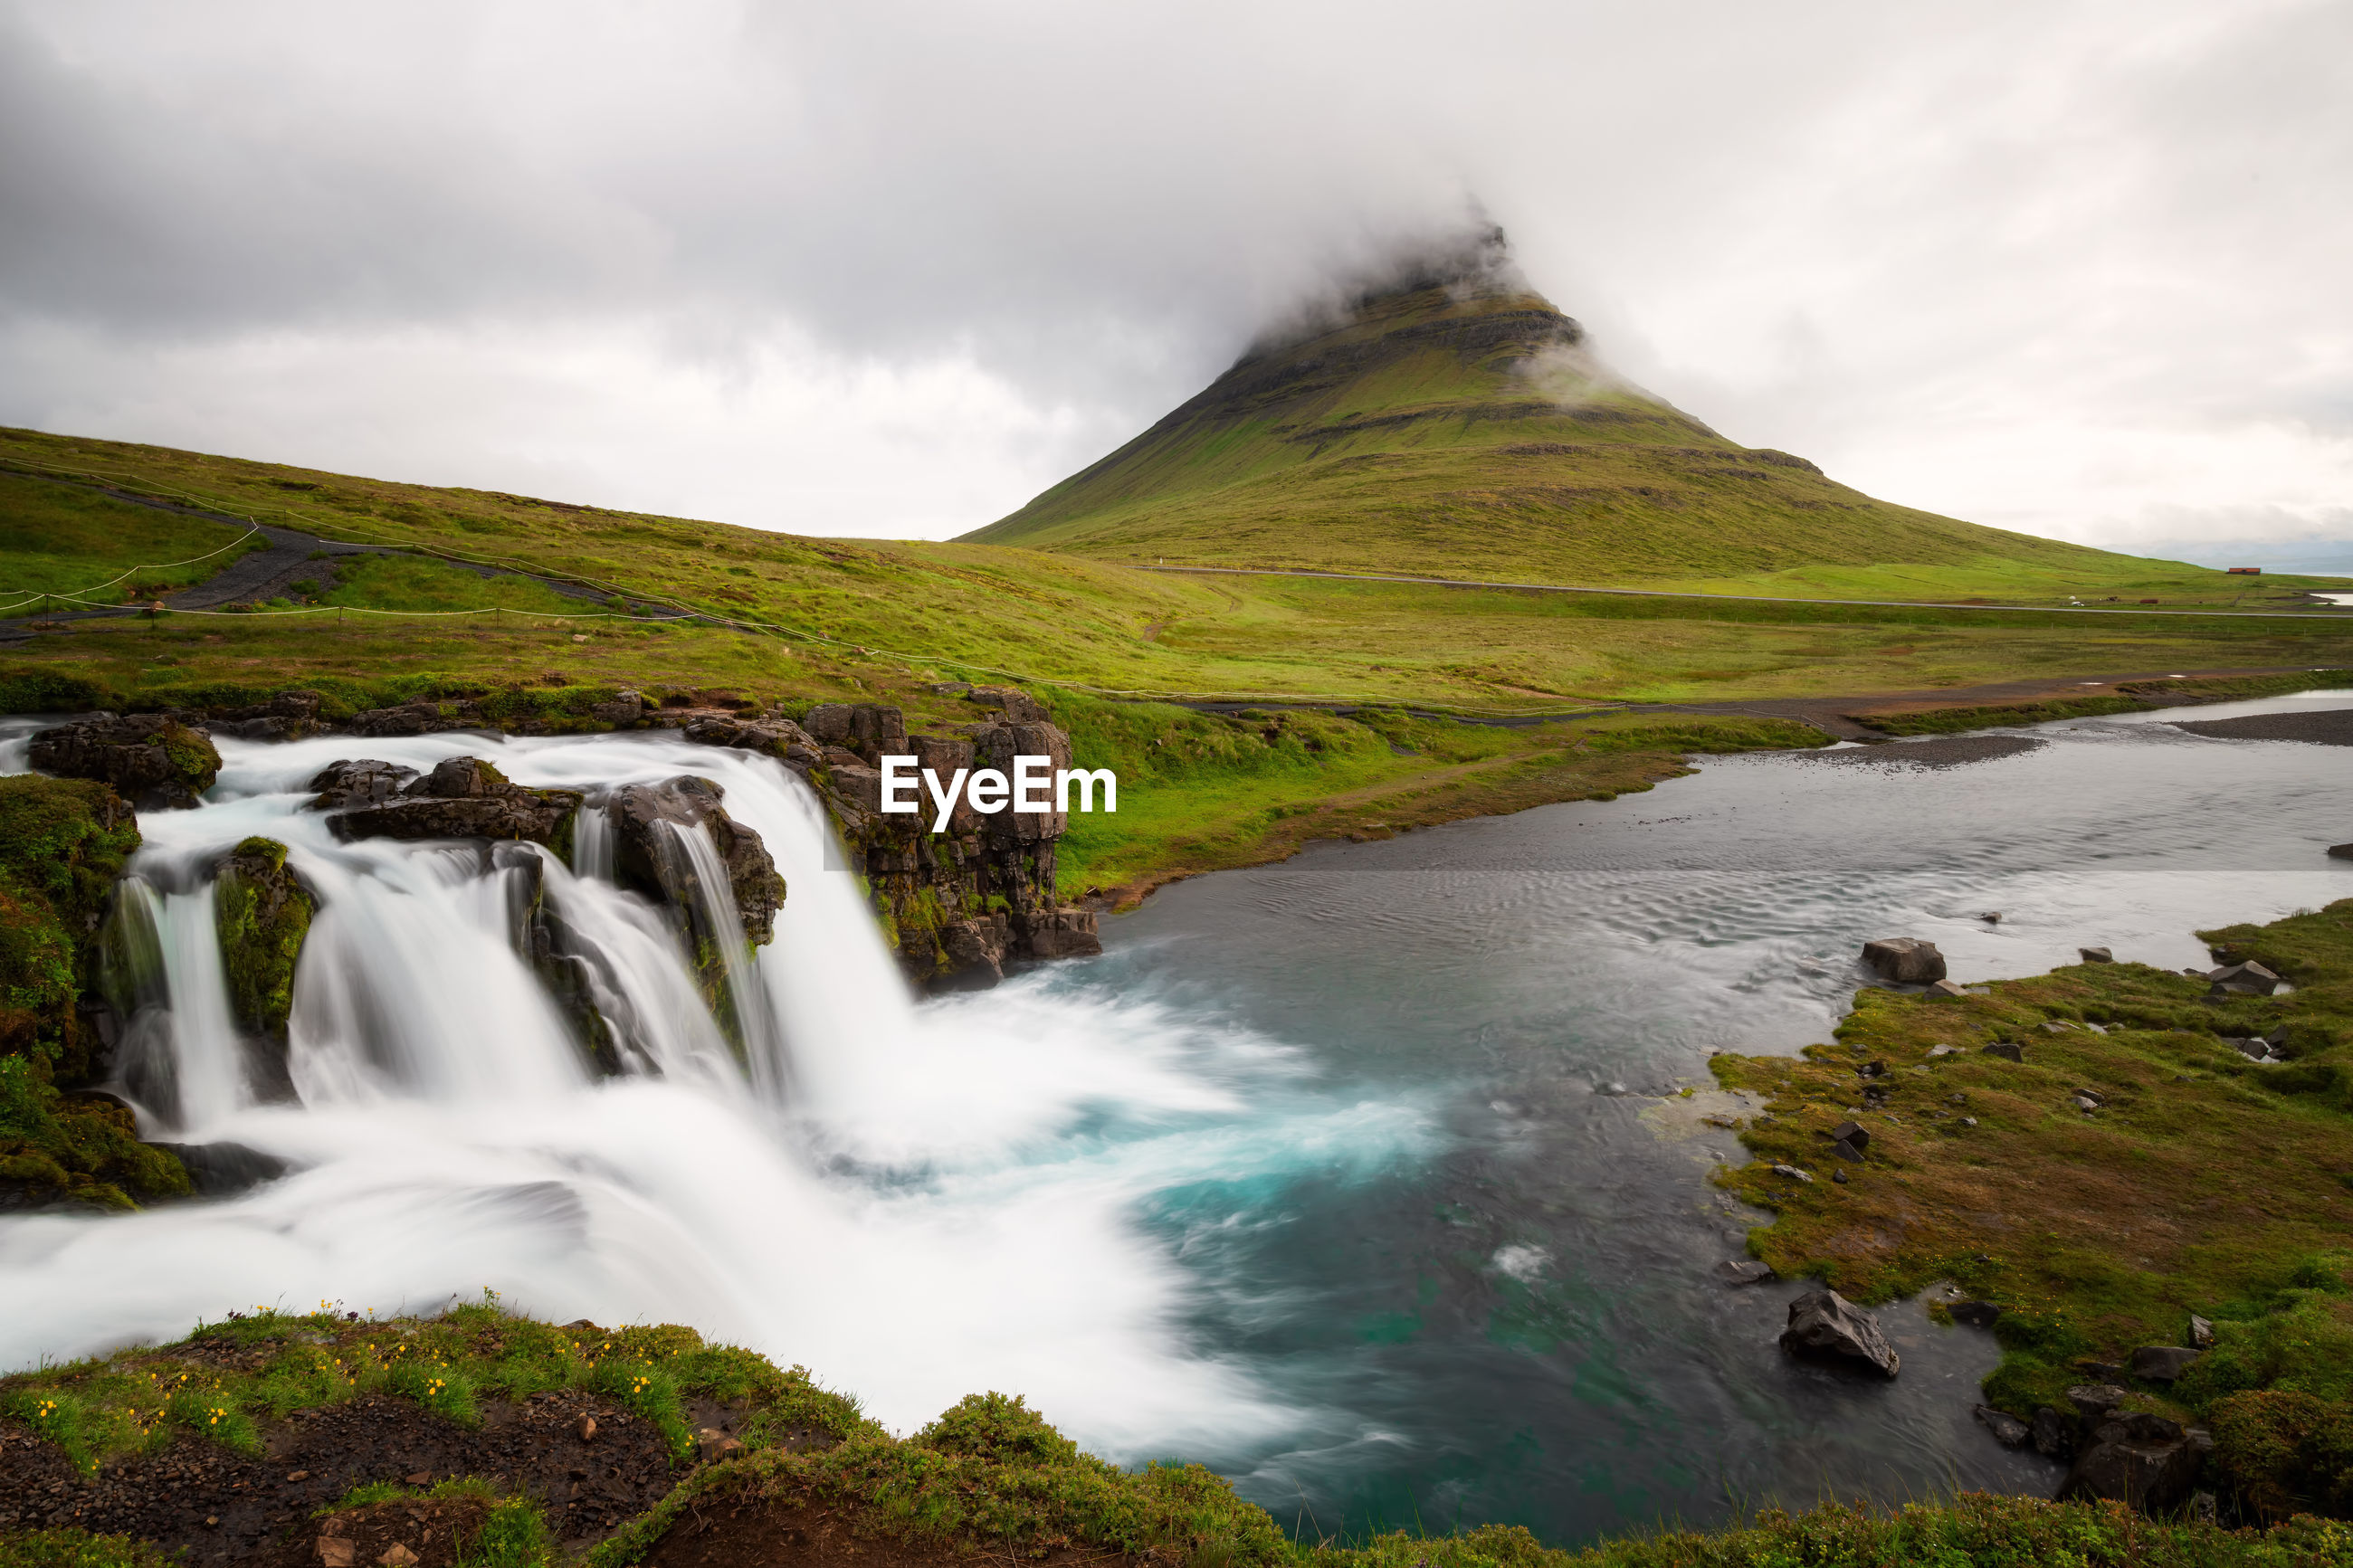 Scenic view of waterfall and mountain against sky